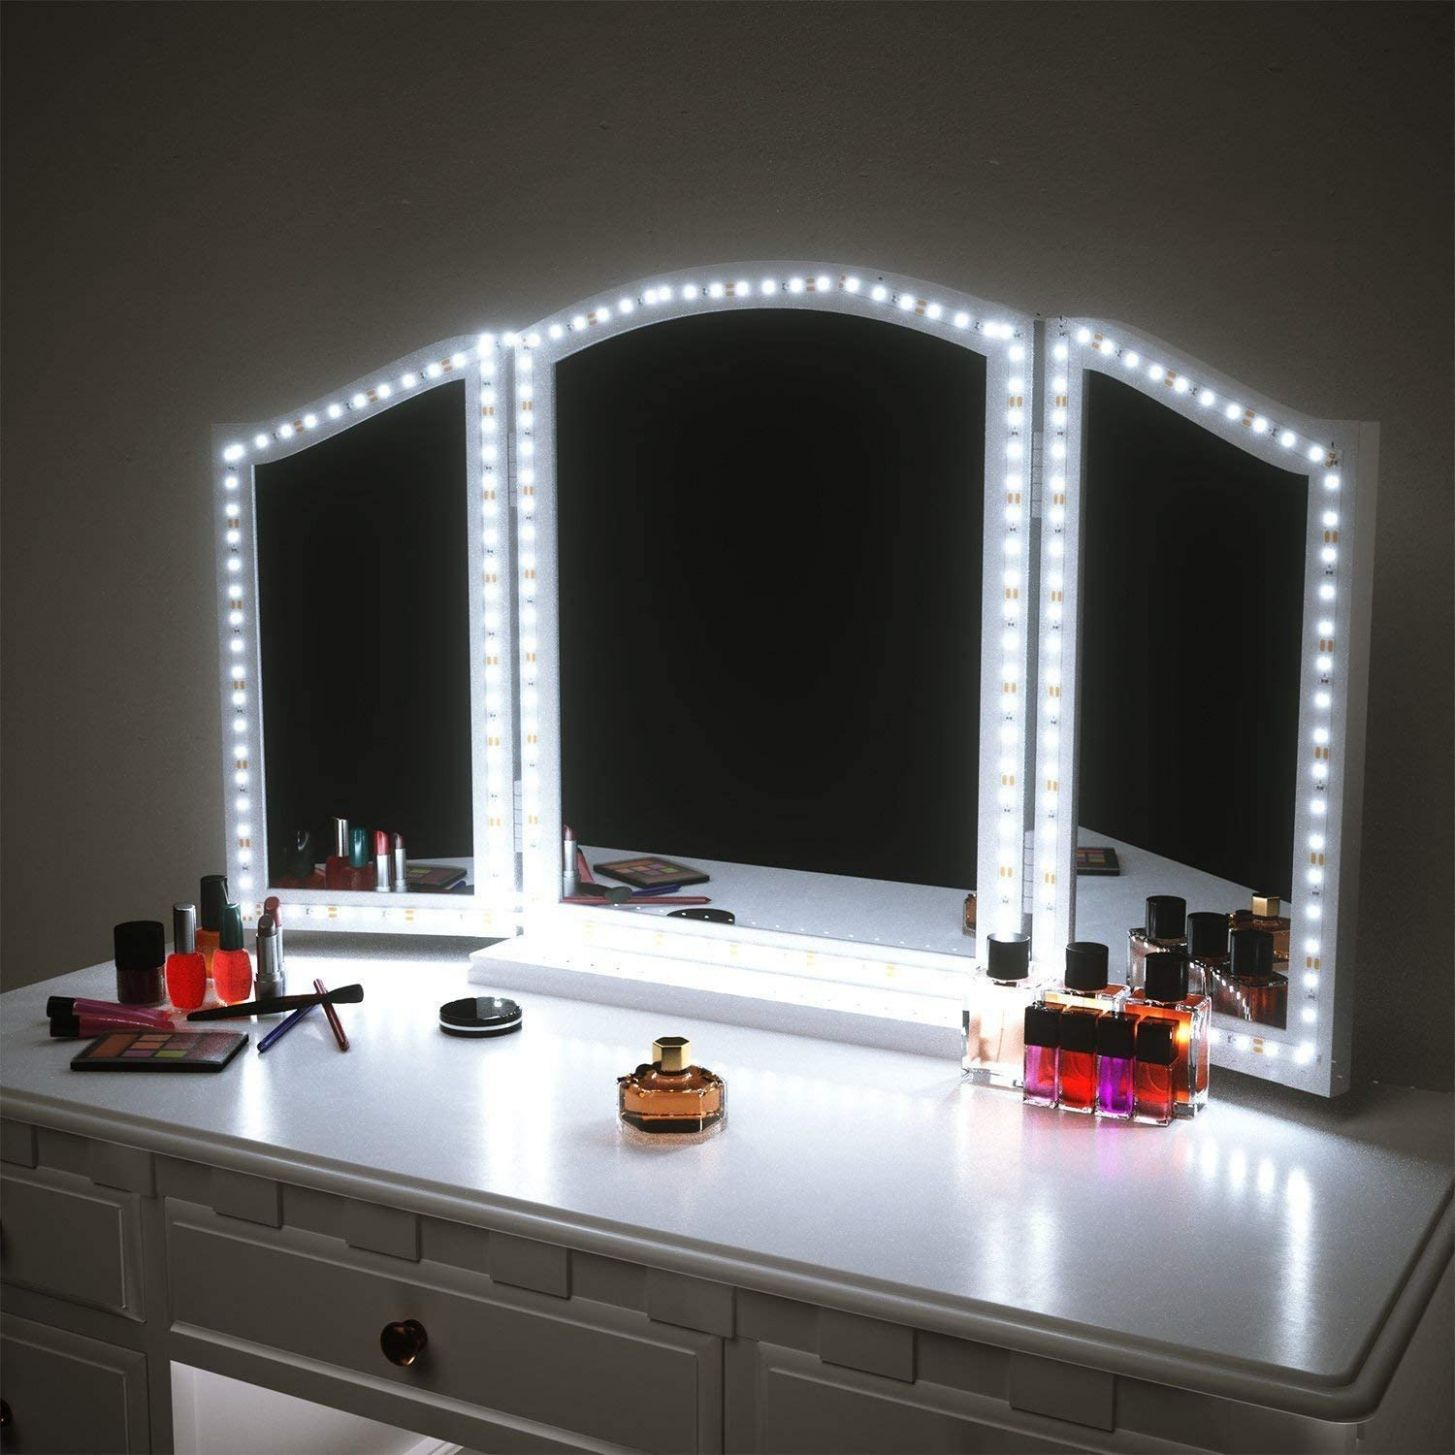 LED Vanity Mirror Lights for Makeup Dressing Table Vanity Set 10ft Flexible  LED Light Strip Kit 10K Daylight White with Dimmer and Power Supply, DIY  ..